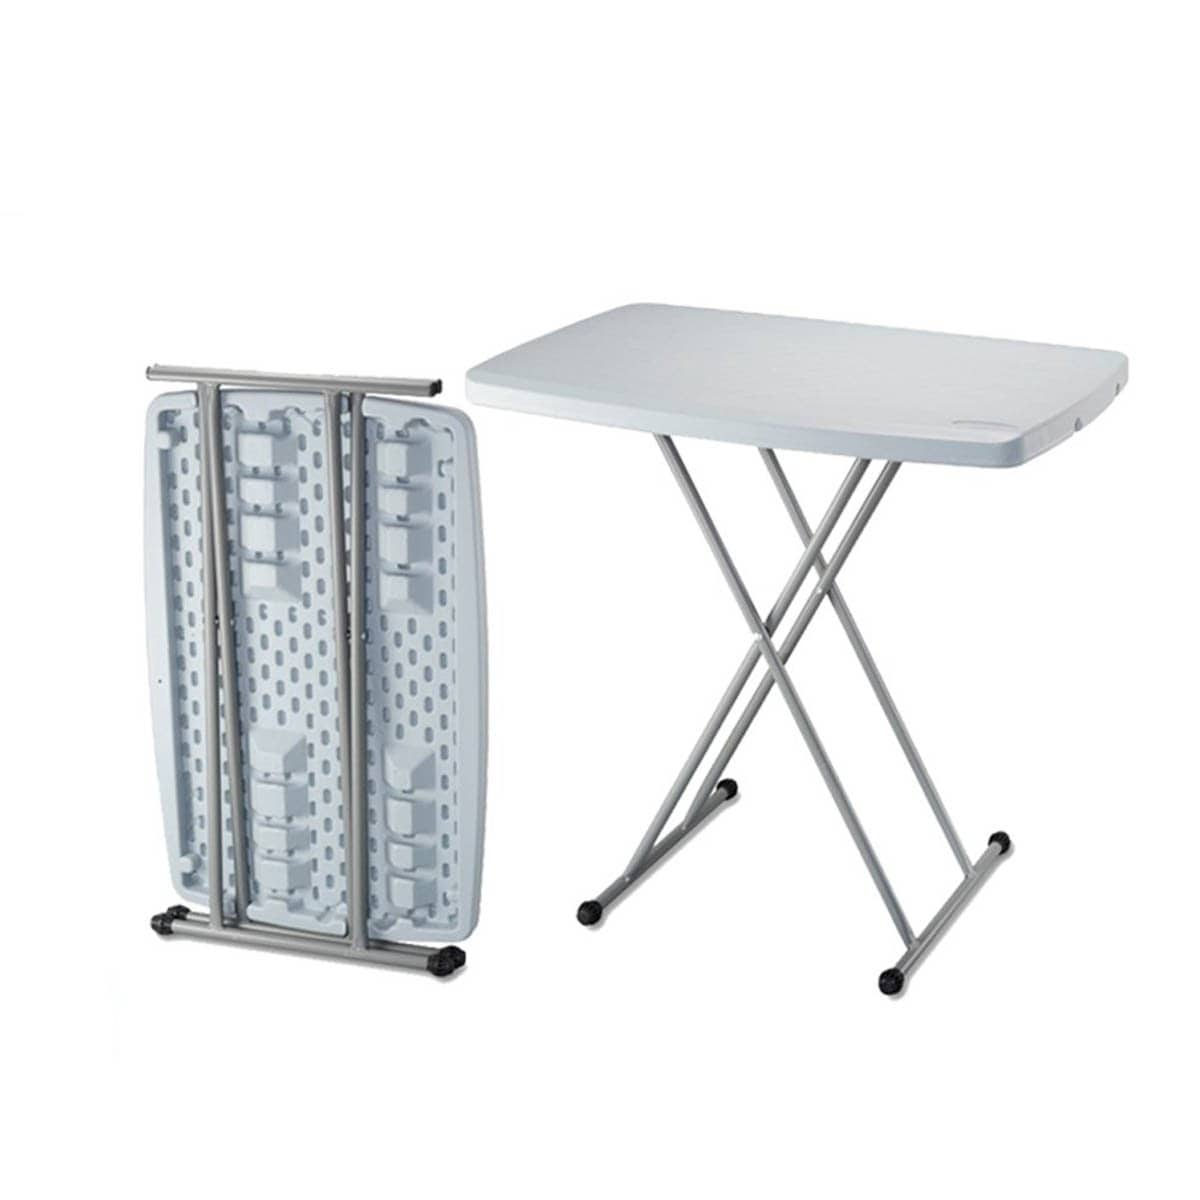 TPP0750 Height Adjust Personal Table